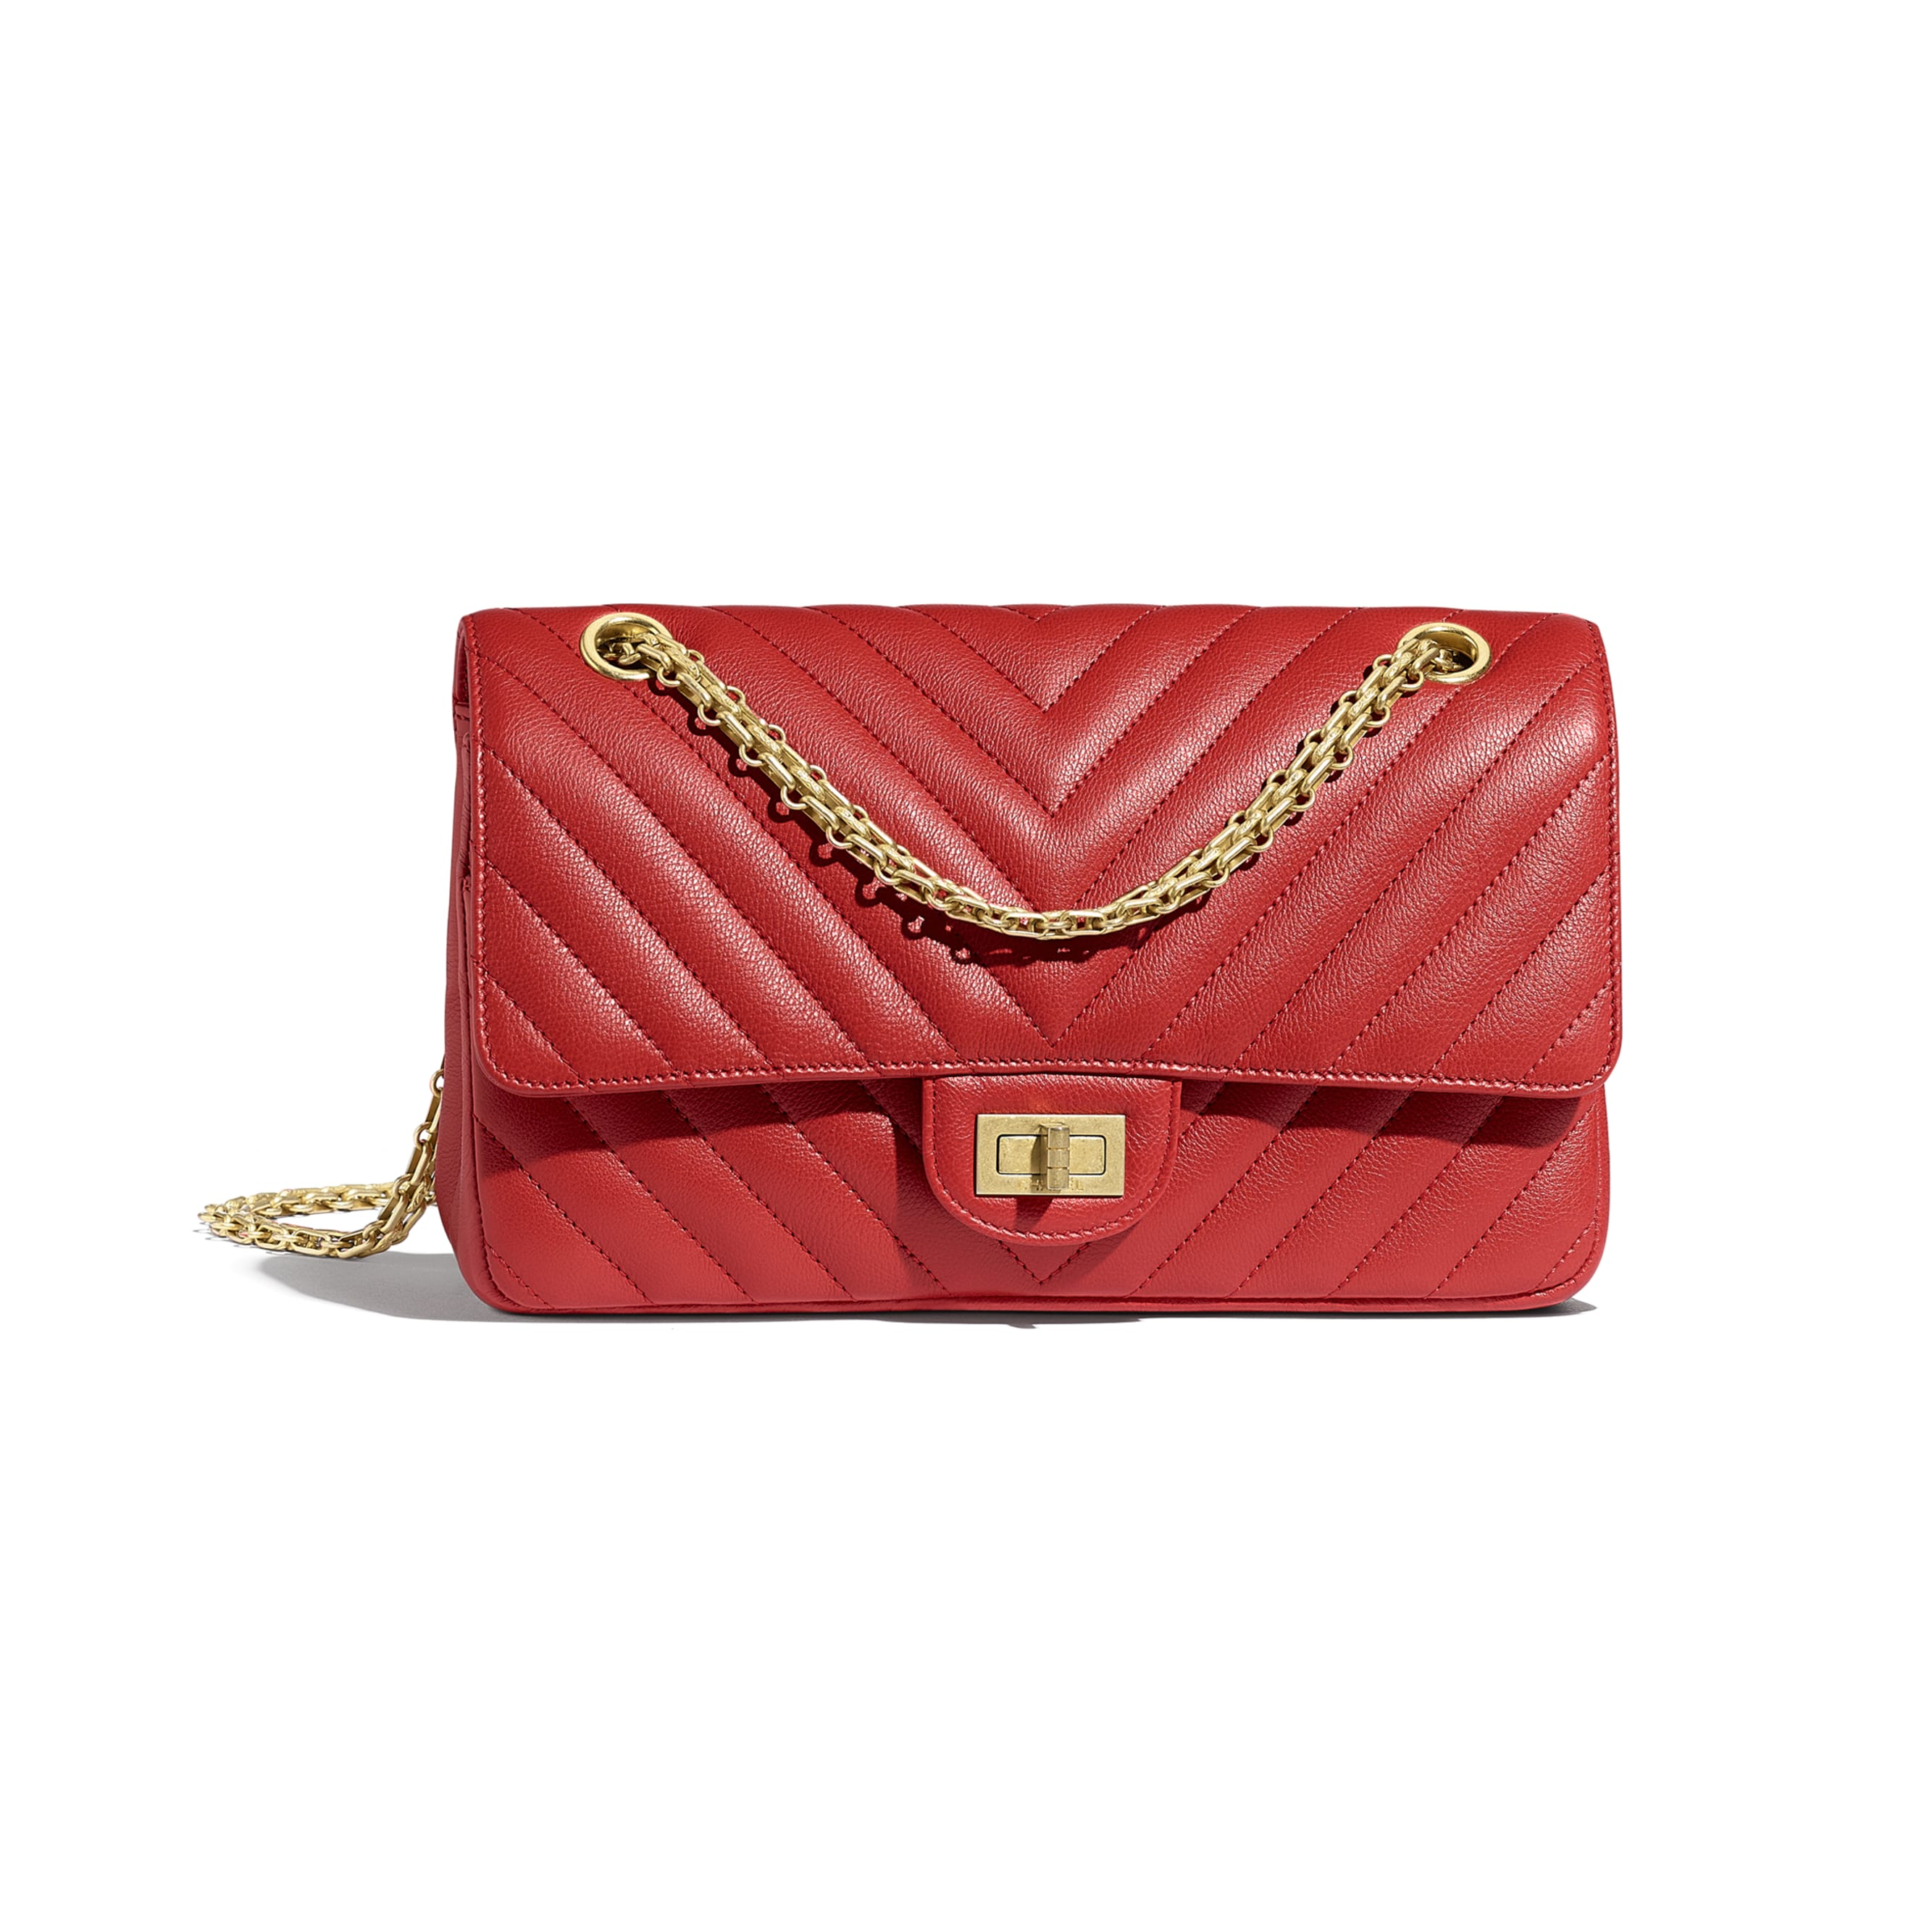 2.55 Handbag - Red - Grained Calfskin & Gold-Tone Metal - CHANEL - Default view - see standard sized version